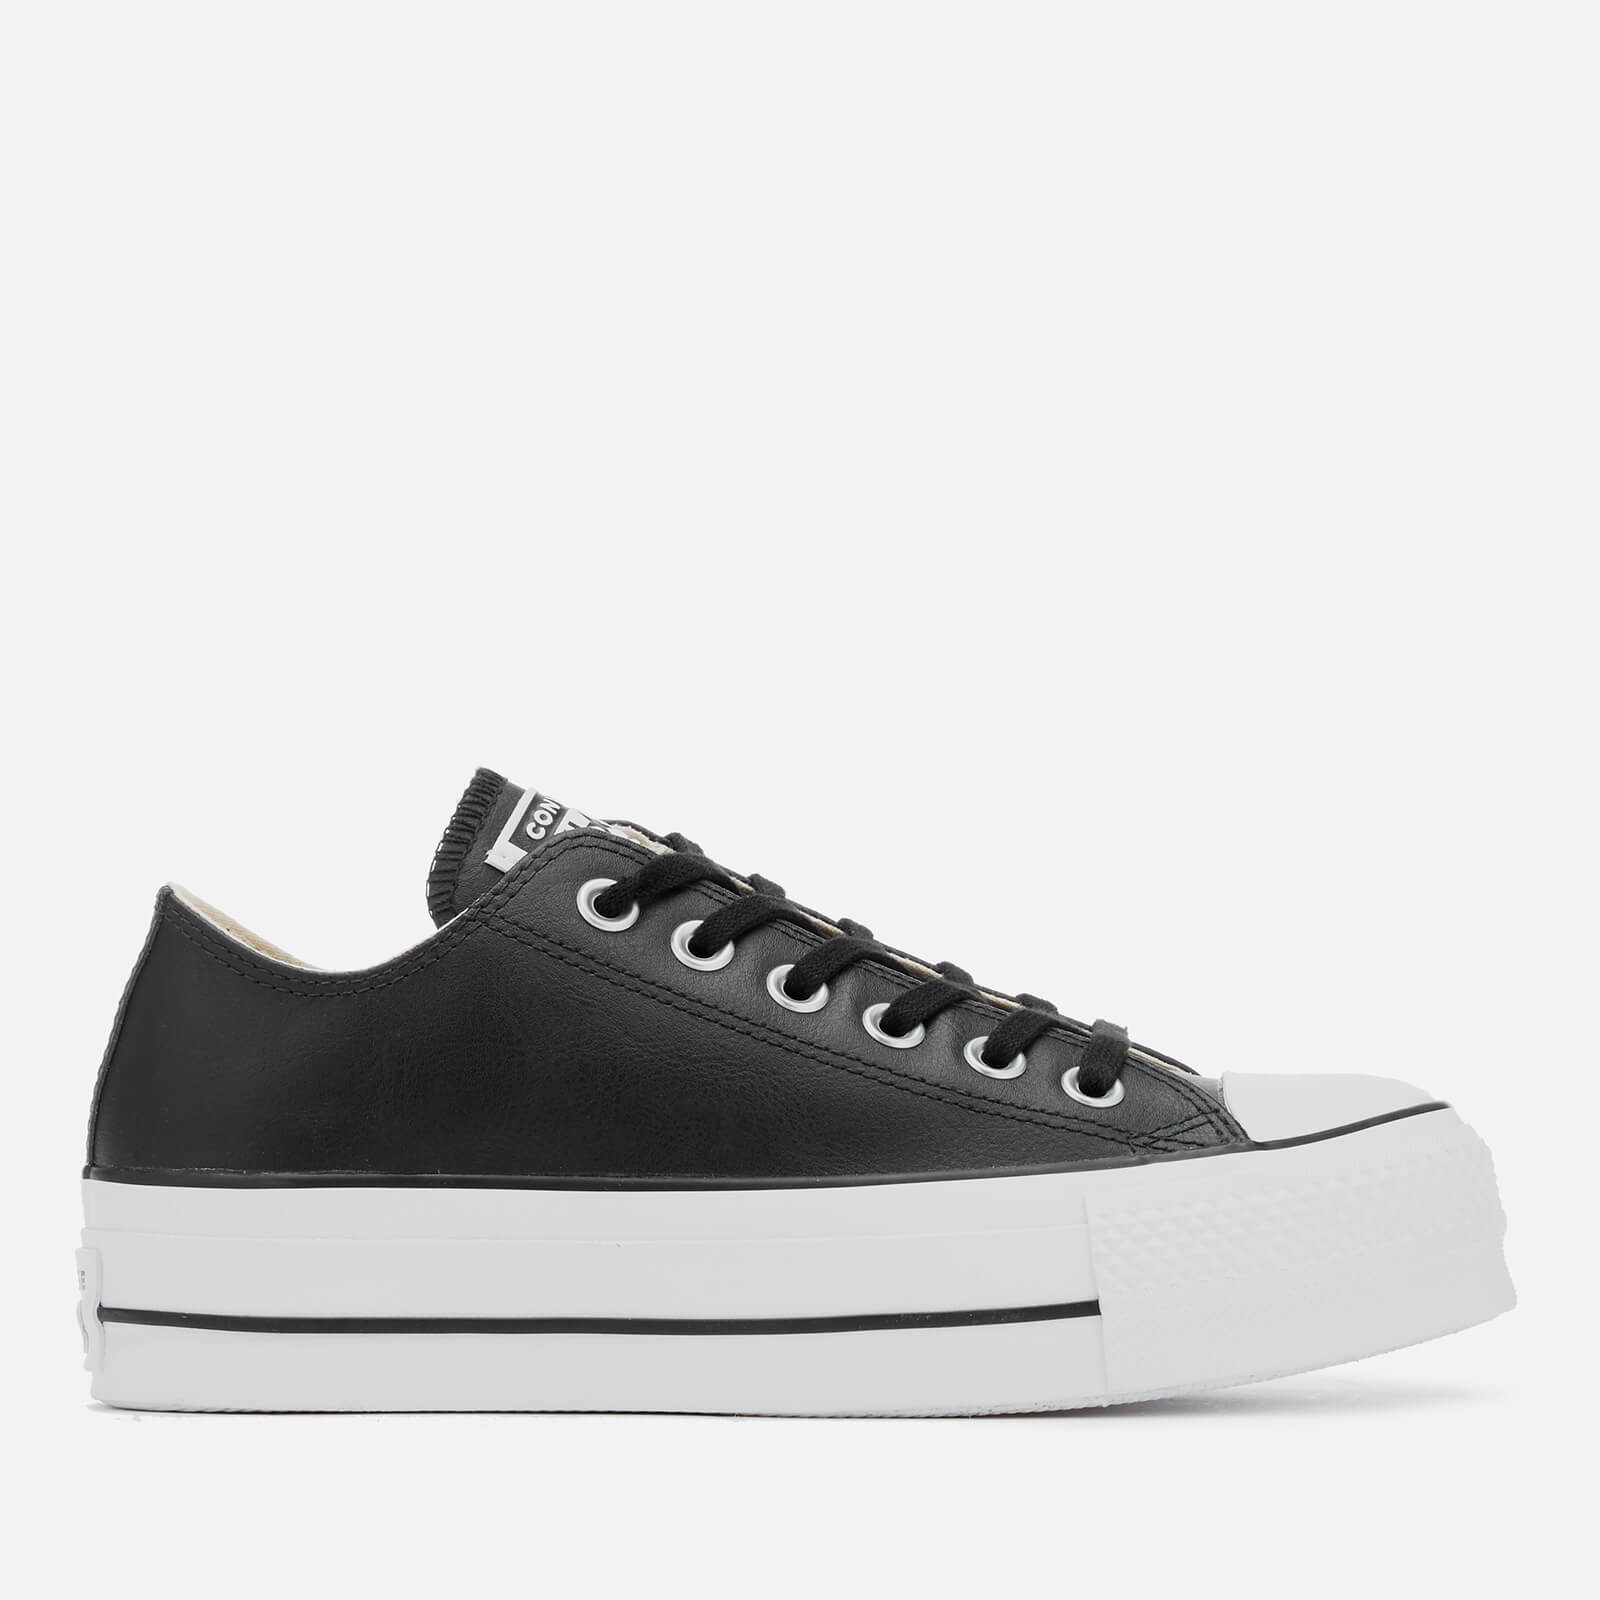 81f1494aaa6 Converse Women's Chuck Taylor All Star Lift Clean Ox Leather Trainers -  Black/White - Free UK Delivery over £50